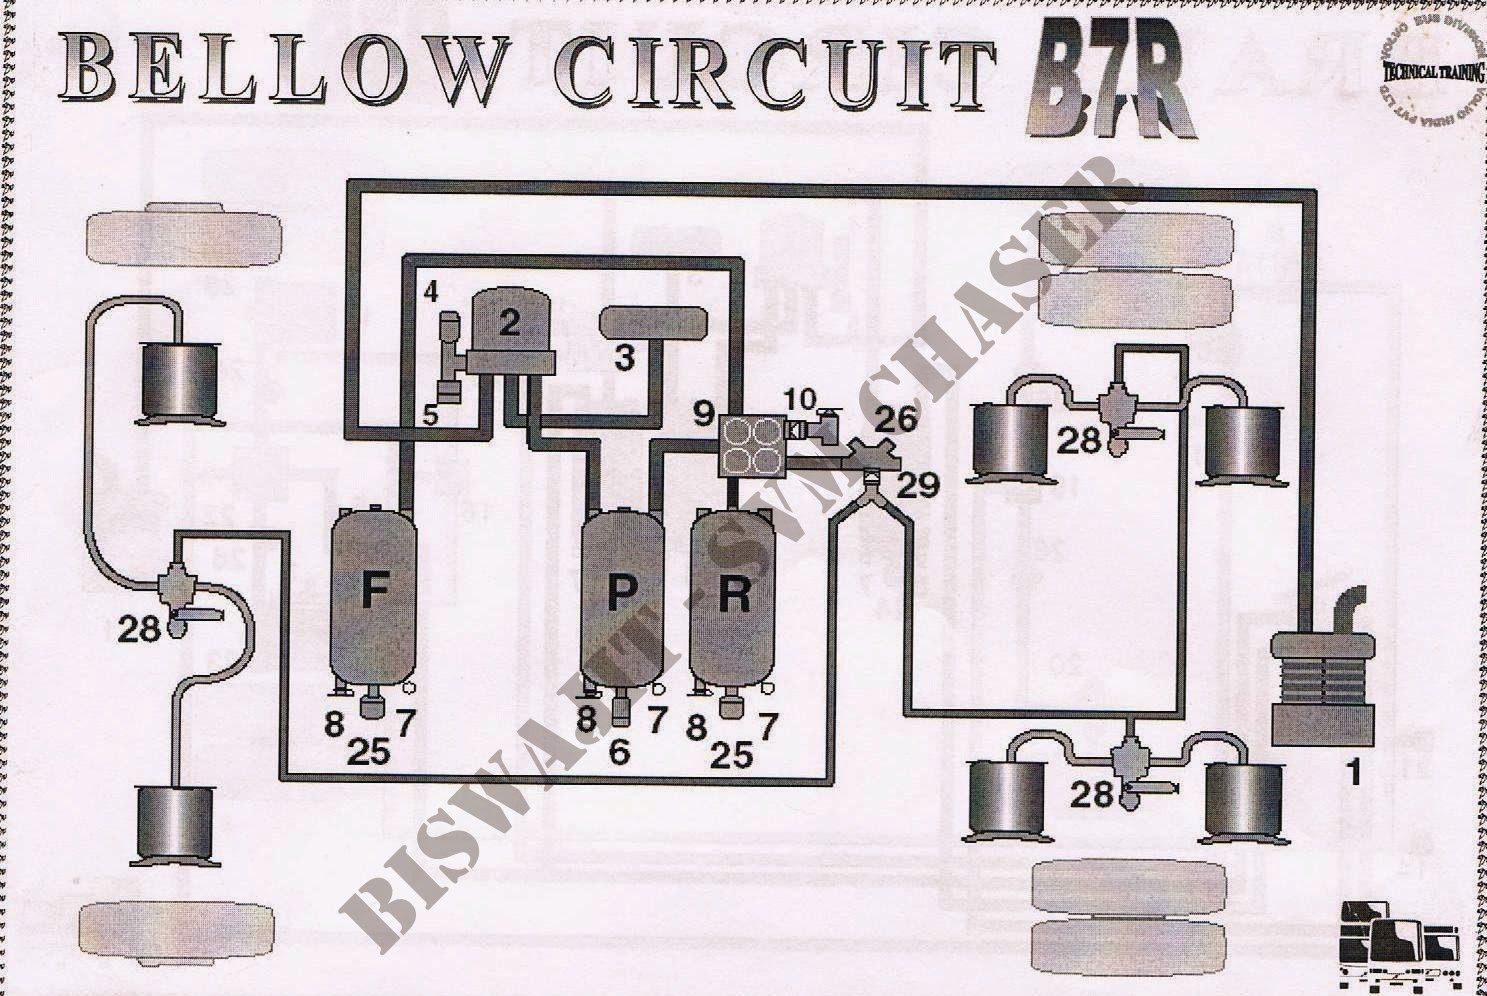 volvo b7r bellow circuit and air suspension biswajit svm chaservolvo b7r bellow circuit diagram [ 1487 x 996 Pixel ]